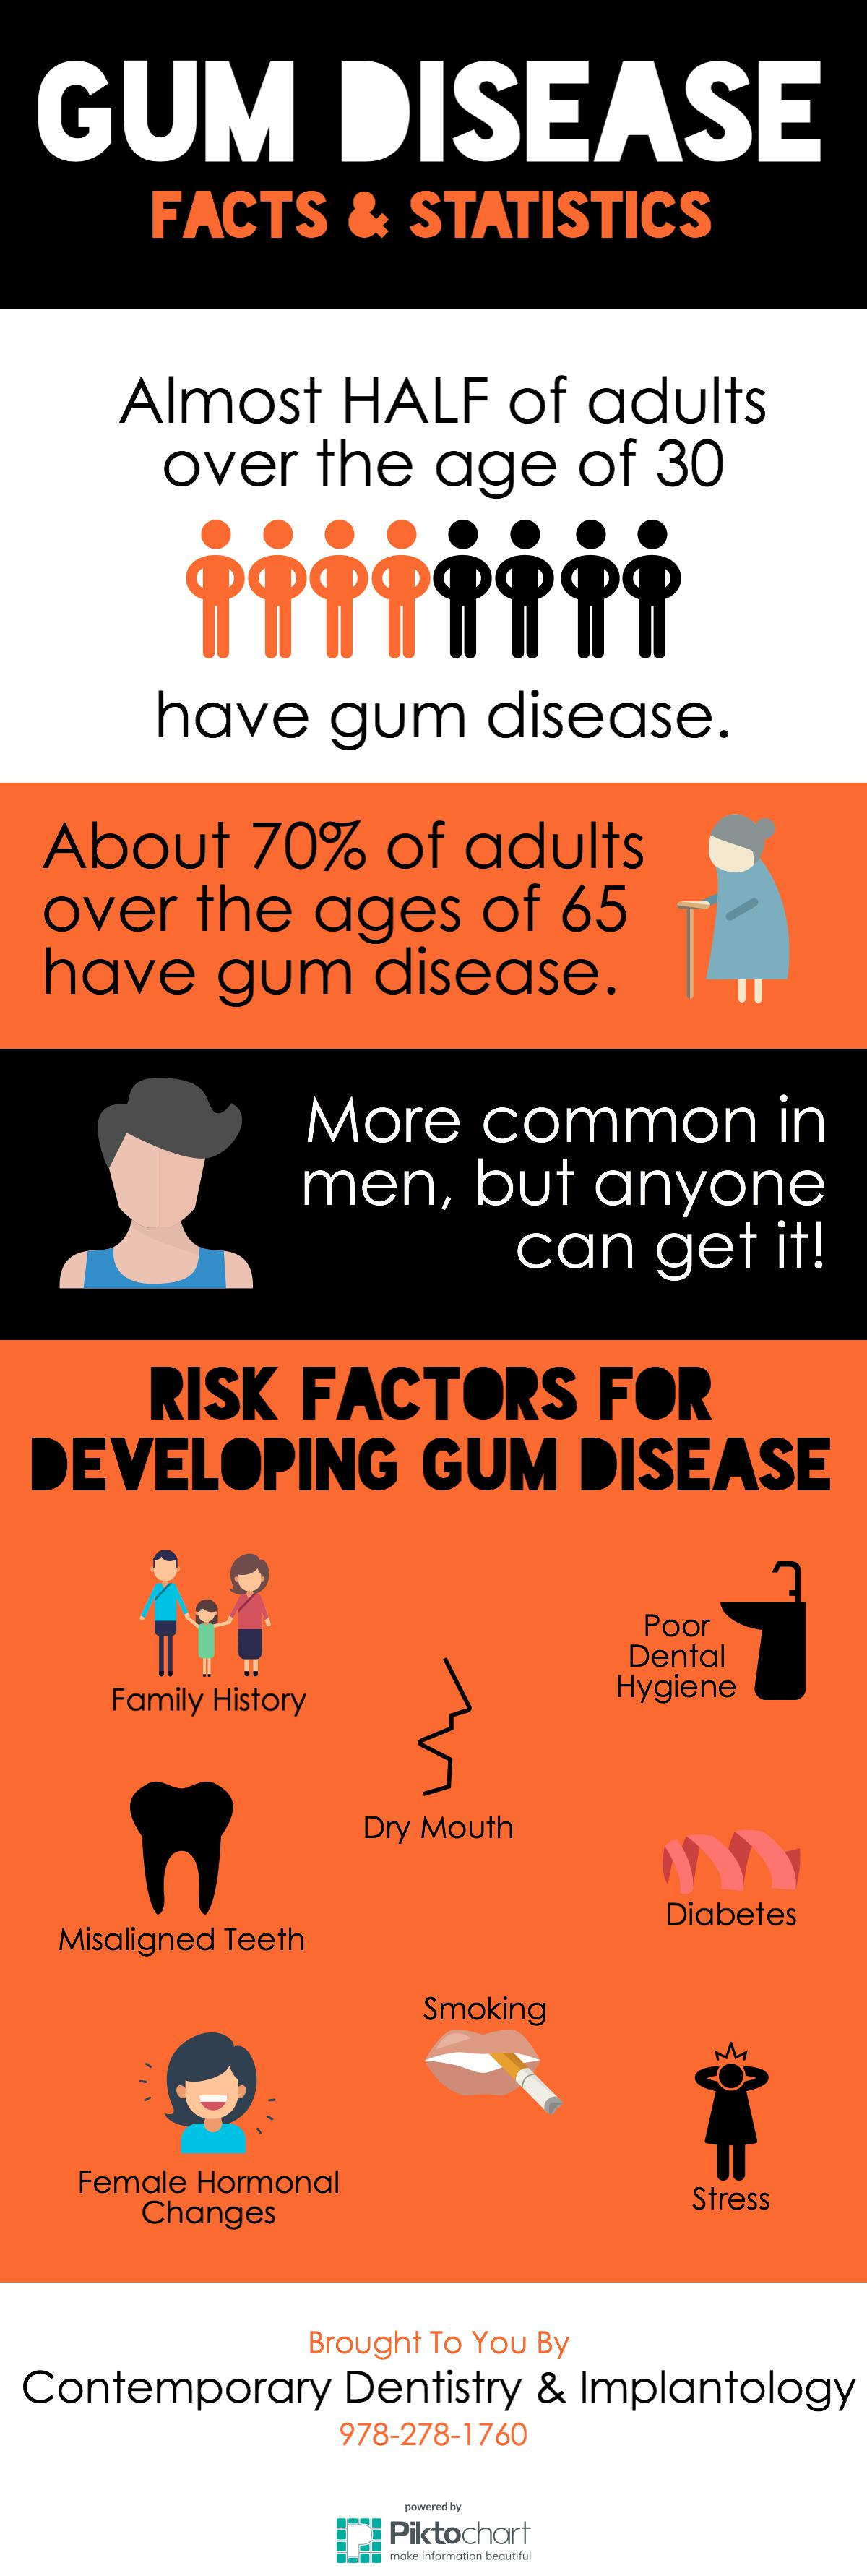 Gum Disease Facts & Statistics [INFOGRAPHIC] - Contemporary Dentistry & Implantology | Peabody, MA